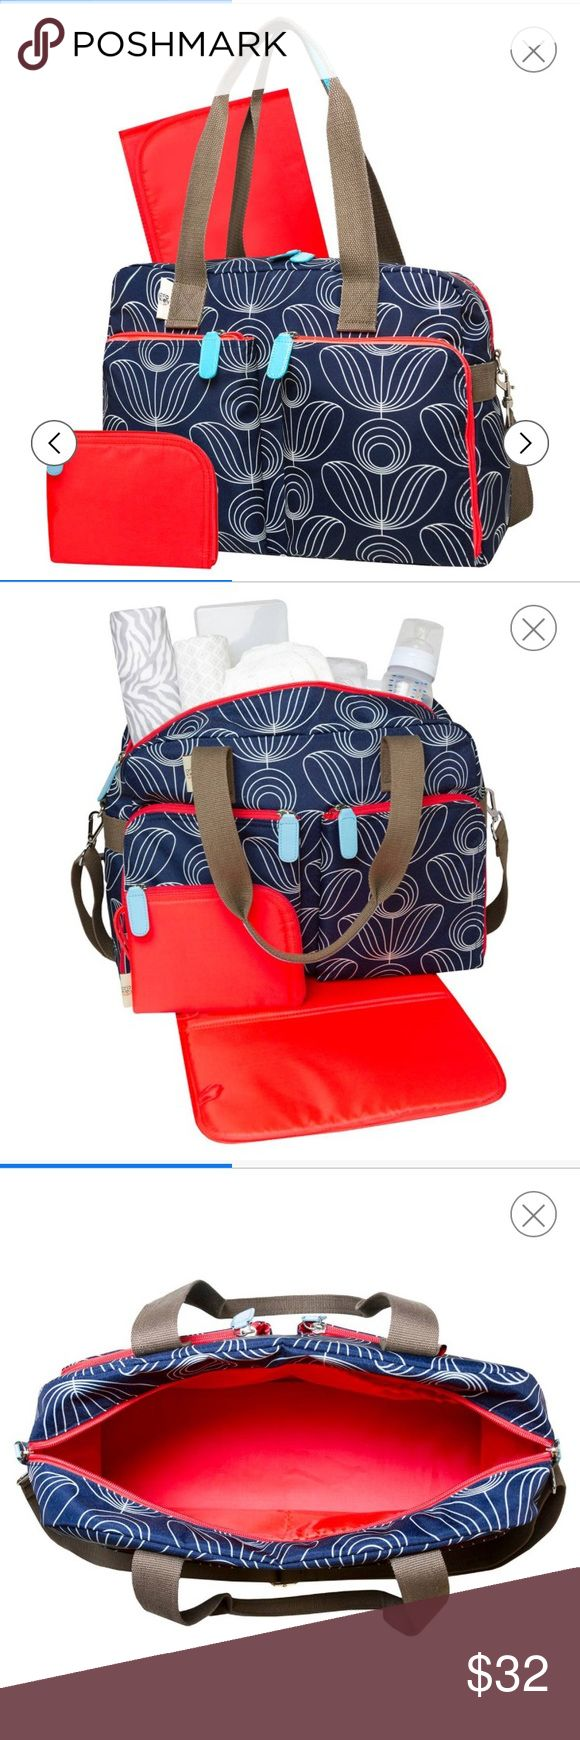 Diaper bag Beautiful diaper bag comes with changing pad and pouch adjustable shoulder strap material easily wipes clean Orla Keily Bags Baby Bags